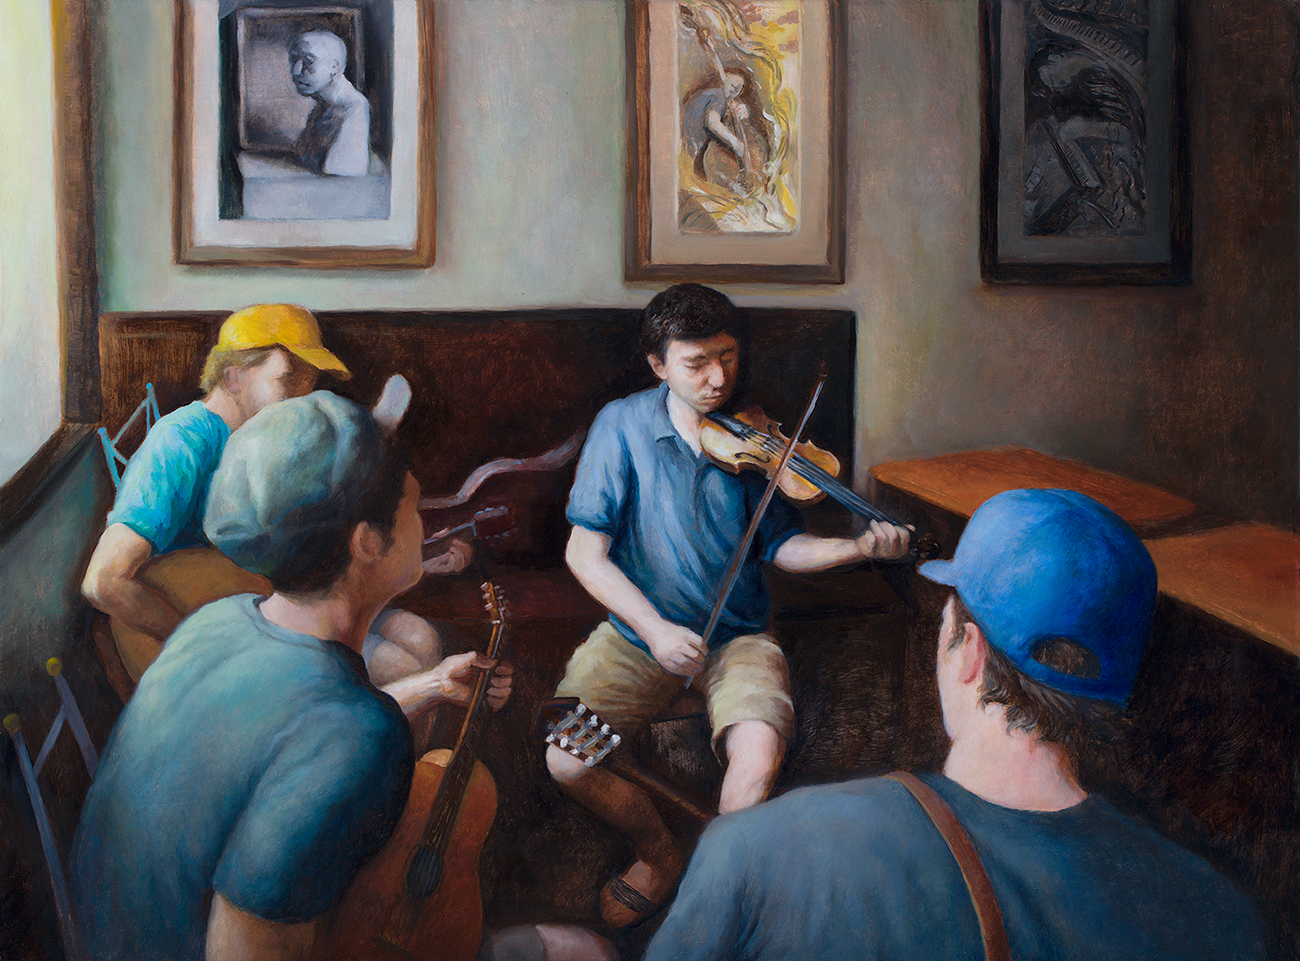 <div class='title'>           (s)Tom Lazinski in Asheville   Rafferty   Painting         </div>